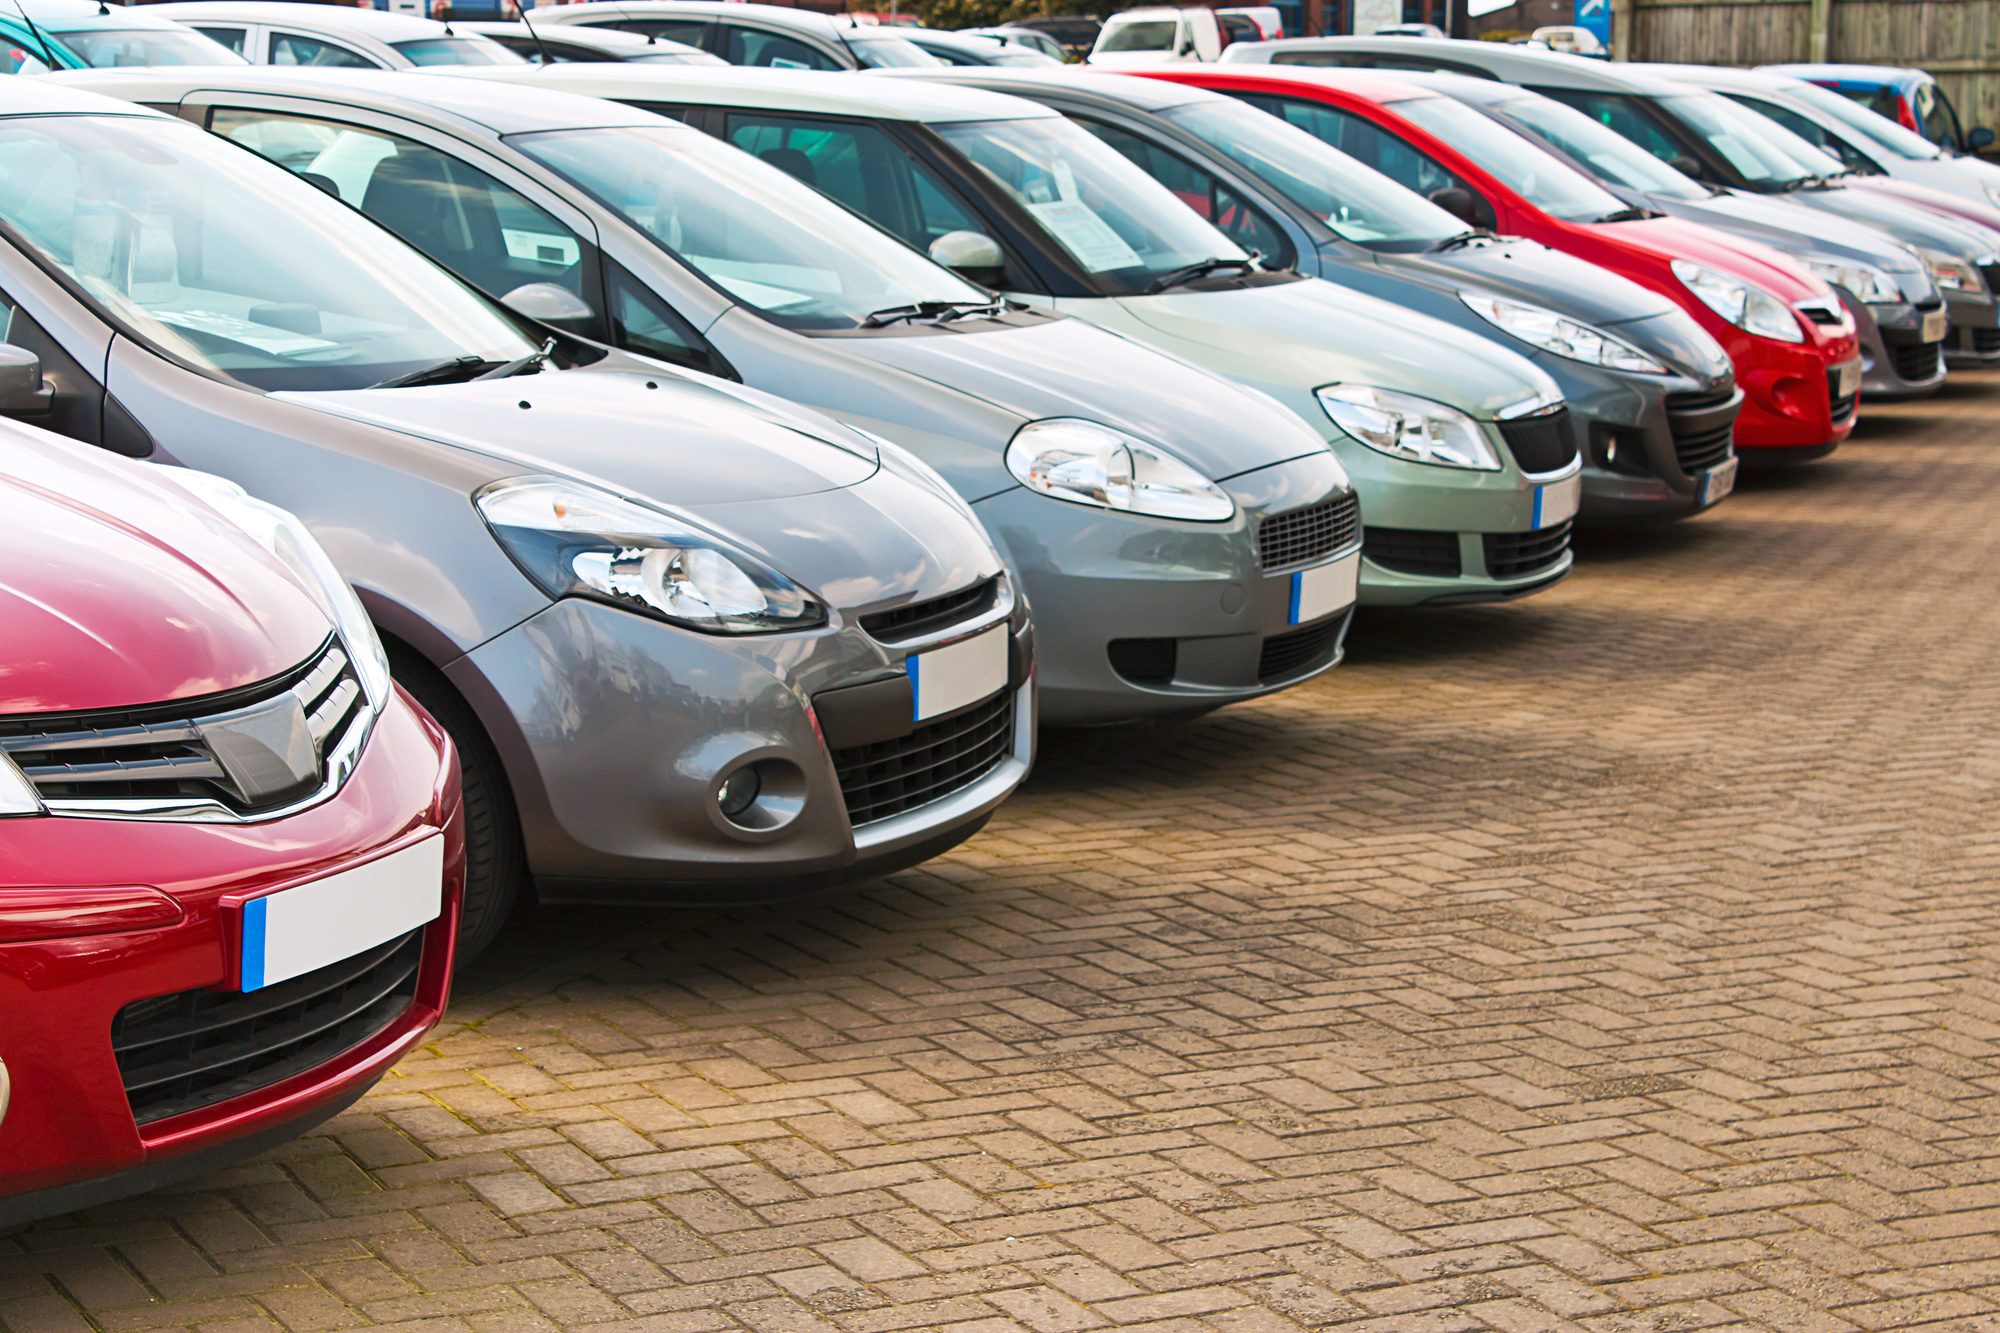 Car selection: selection of sites